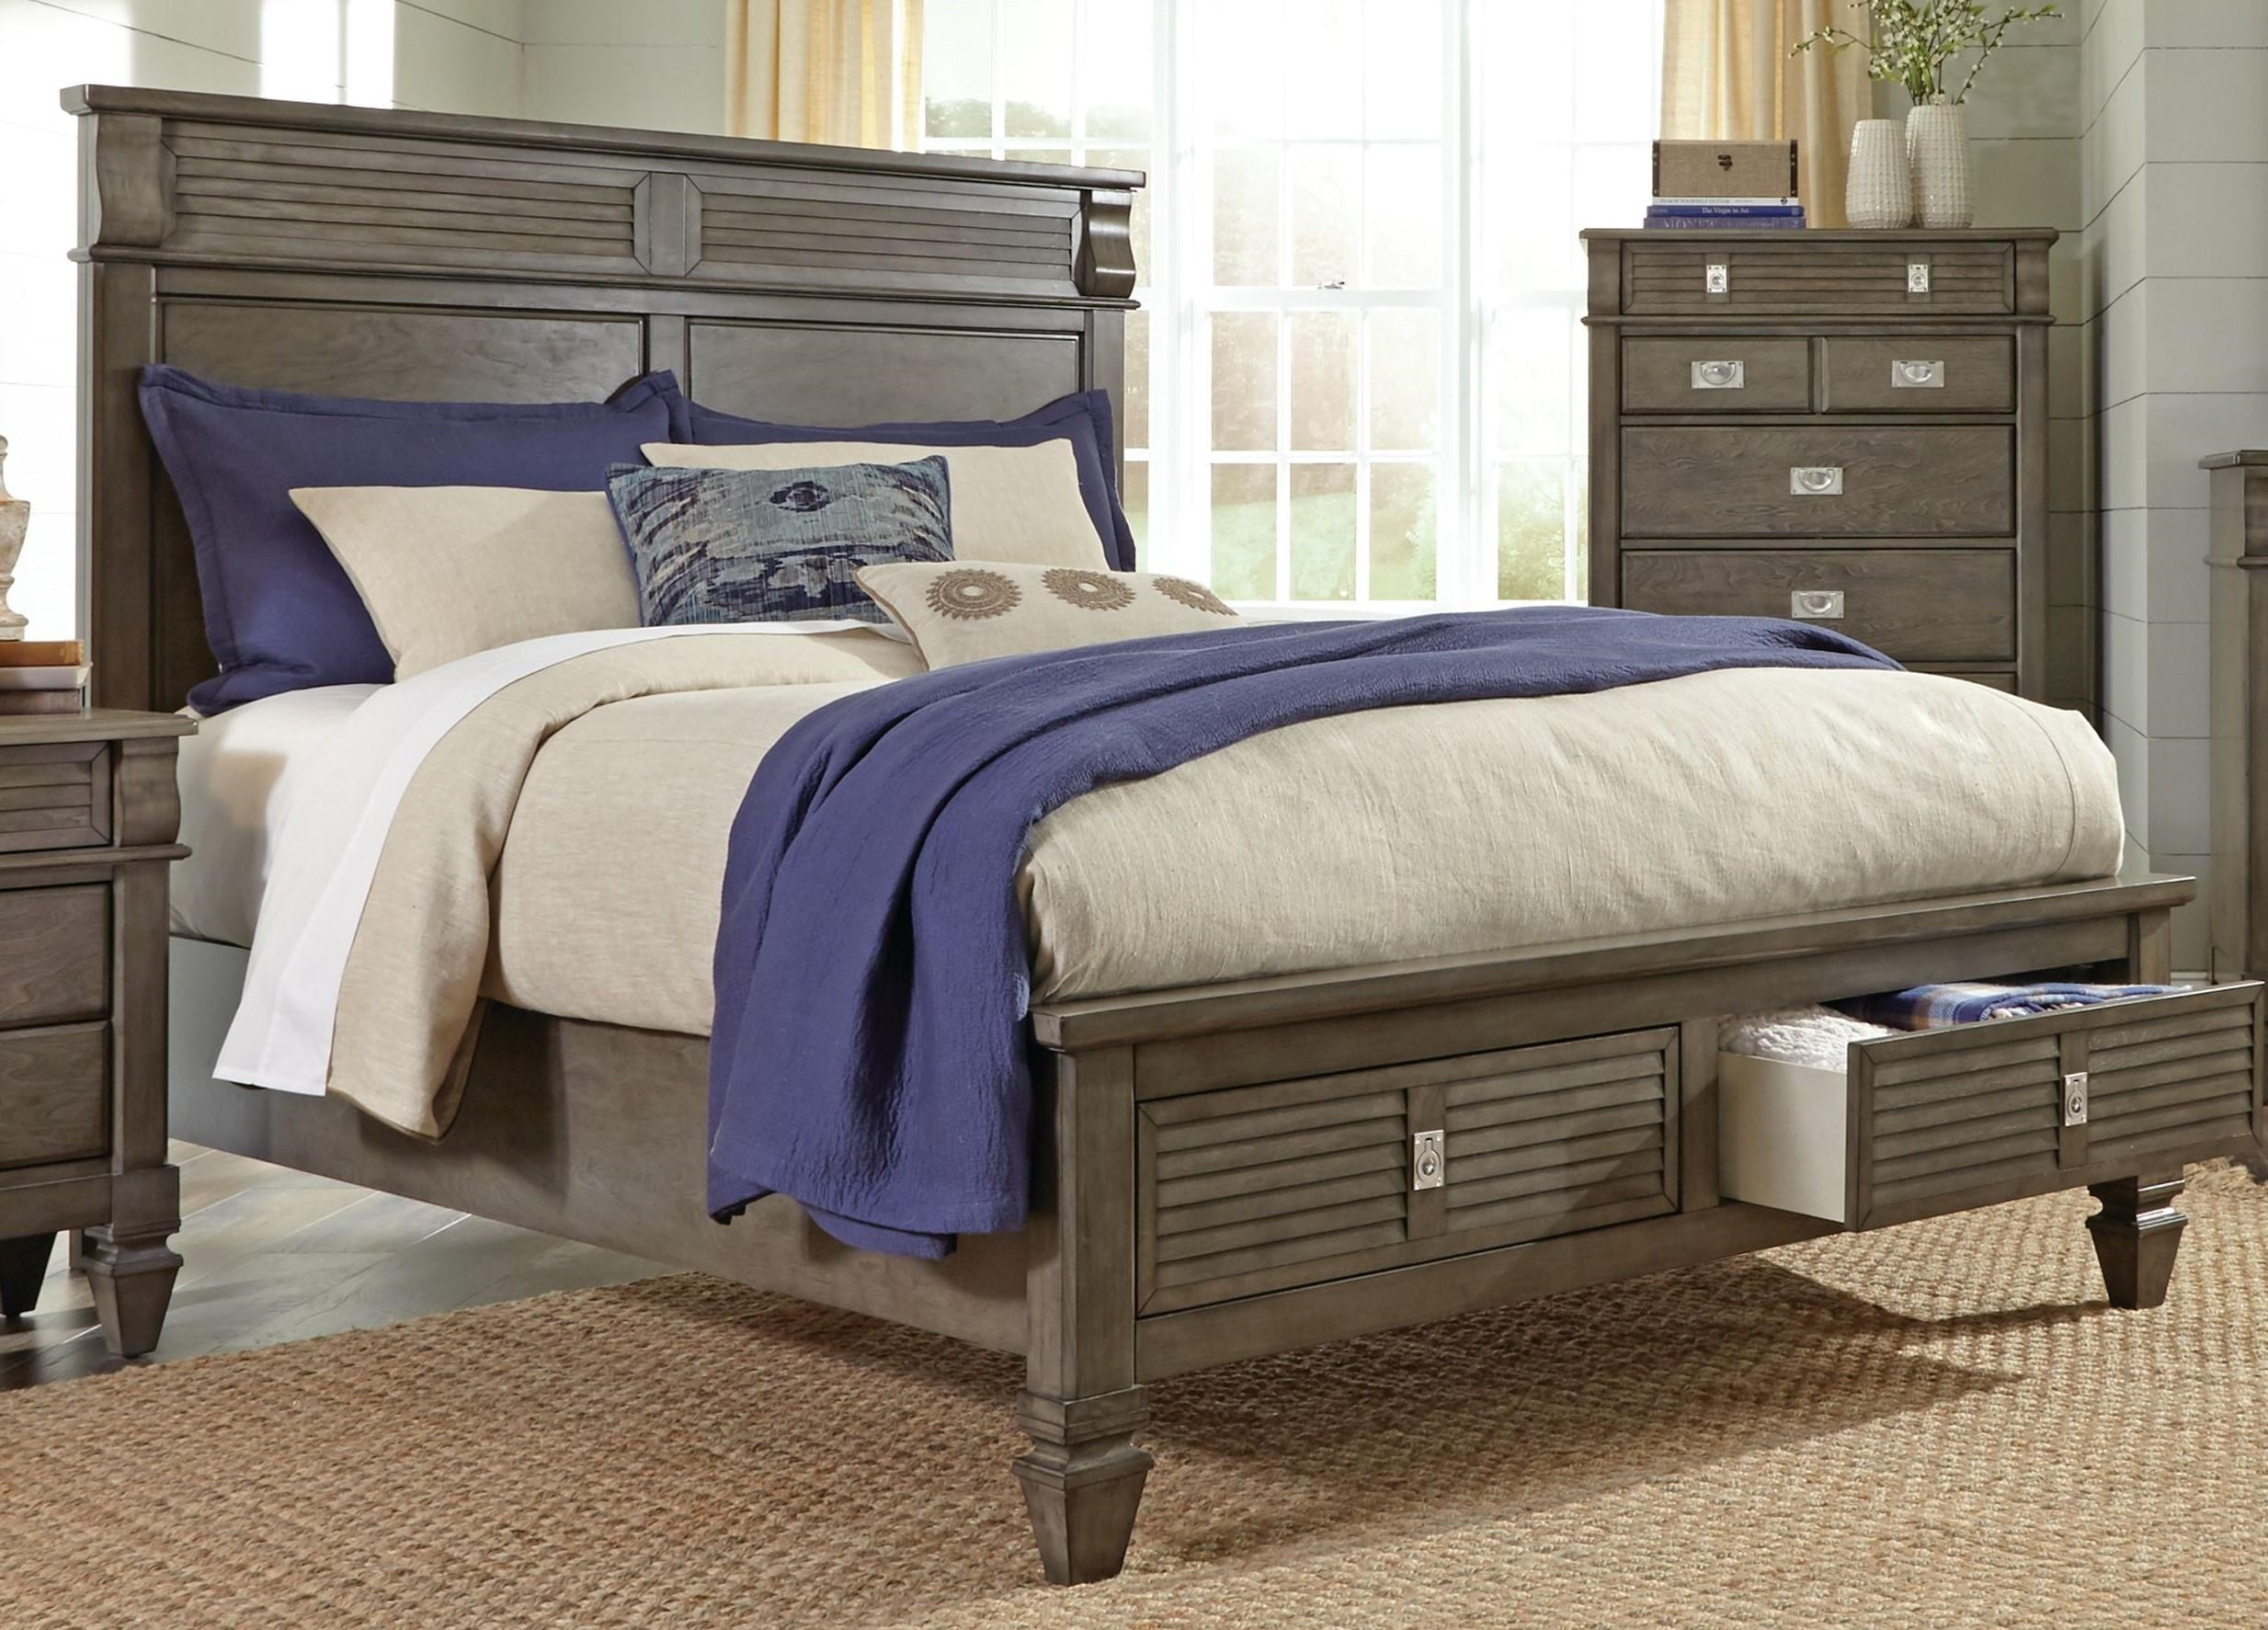 Lifestyle 6204G Queen size storage bed - Item Number: 6204G-Q